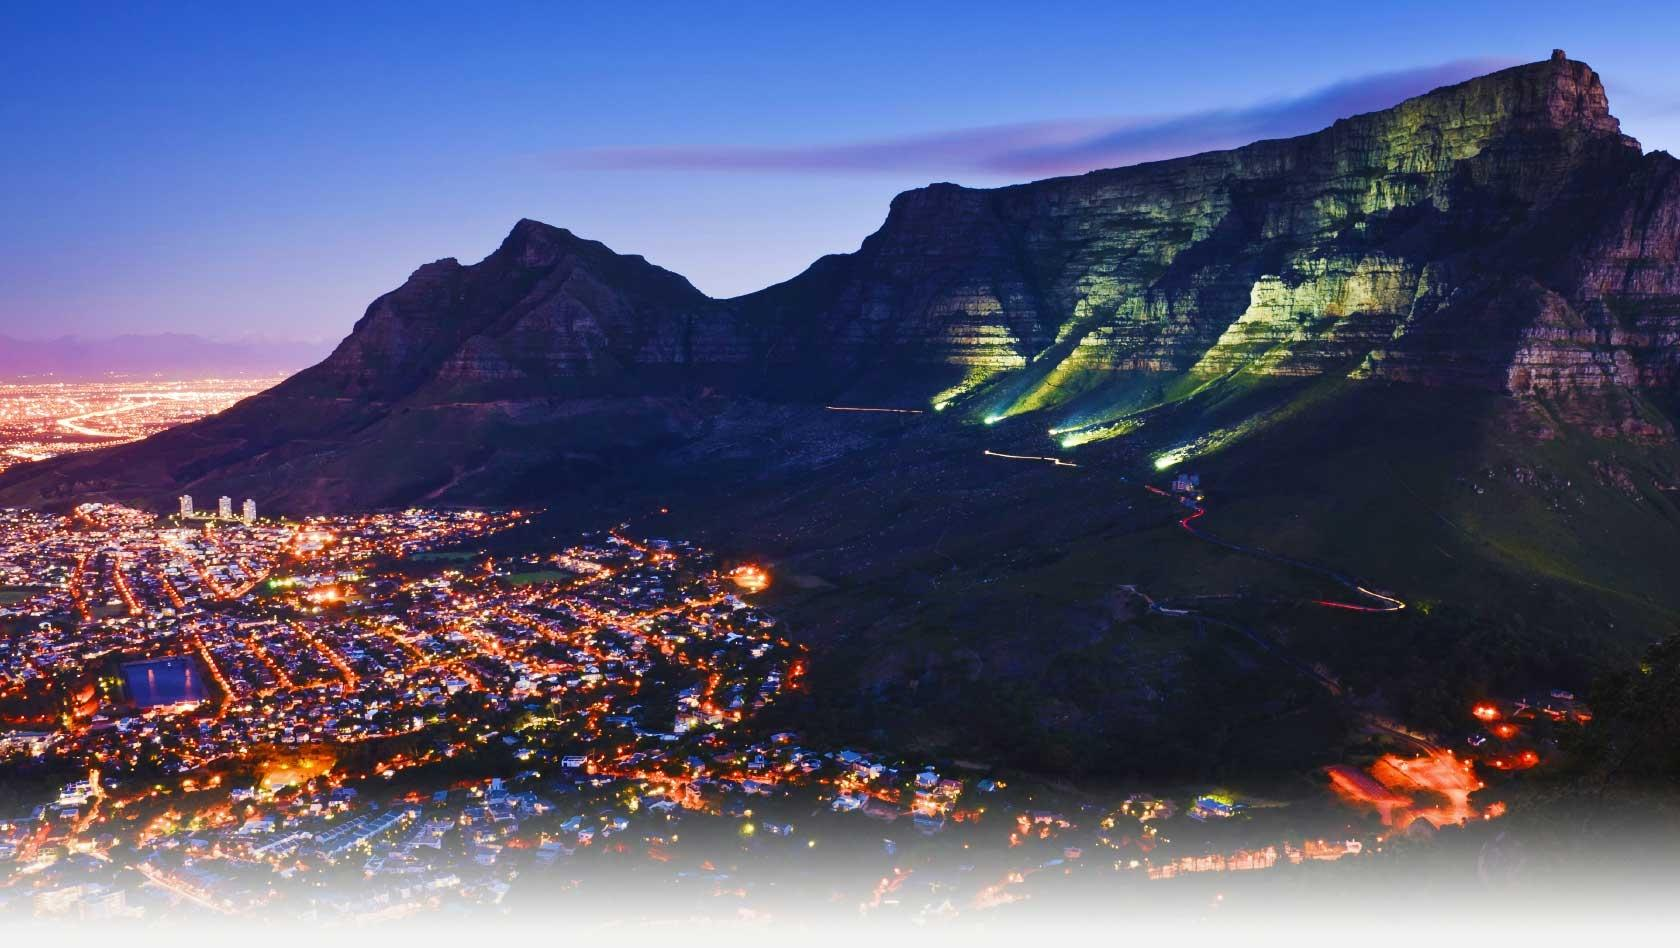 mountain cape town south africa images picture wallpaper download